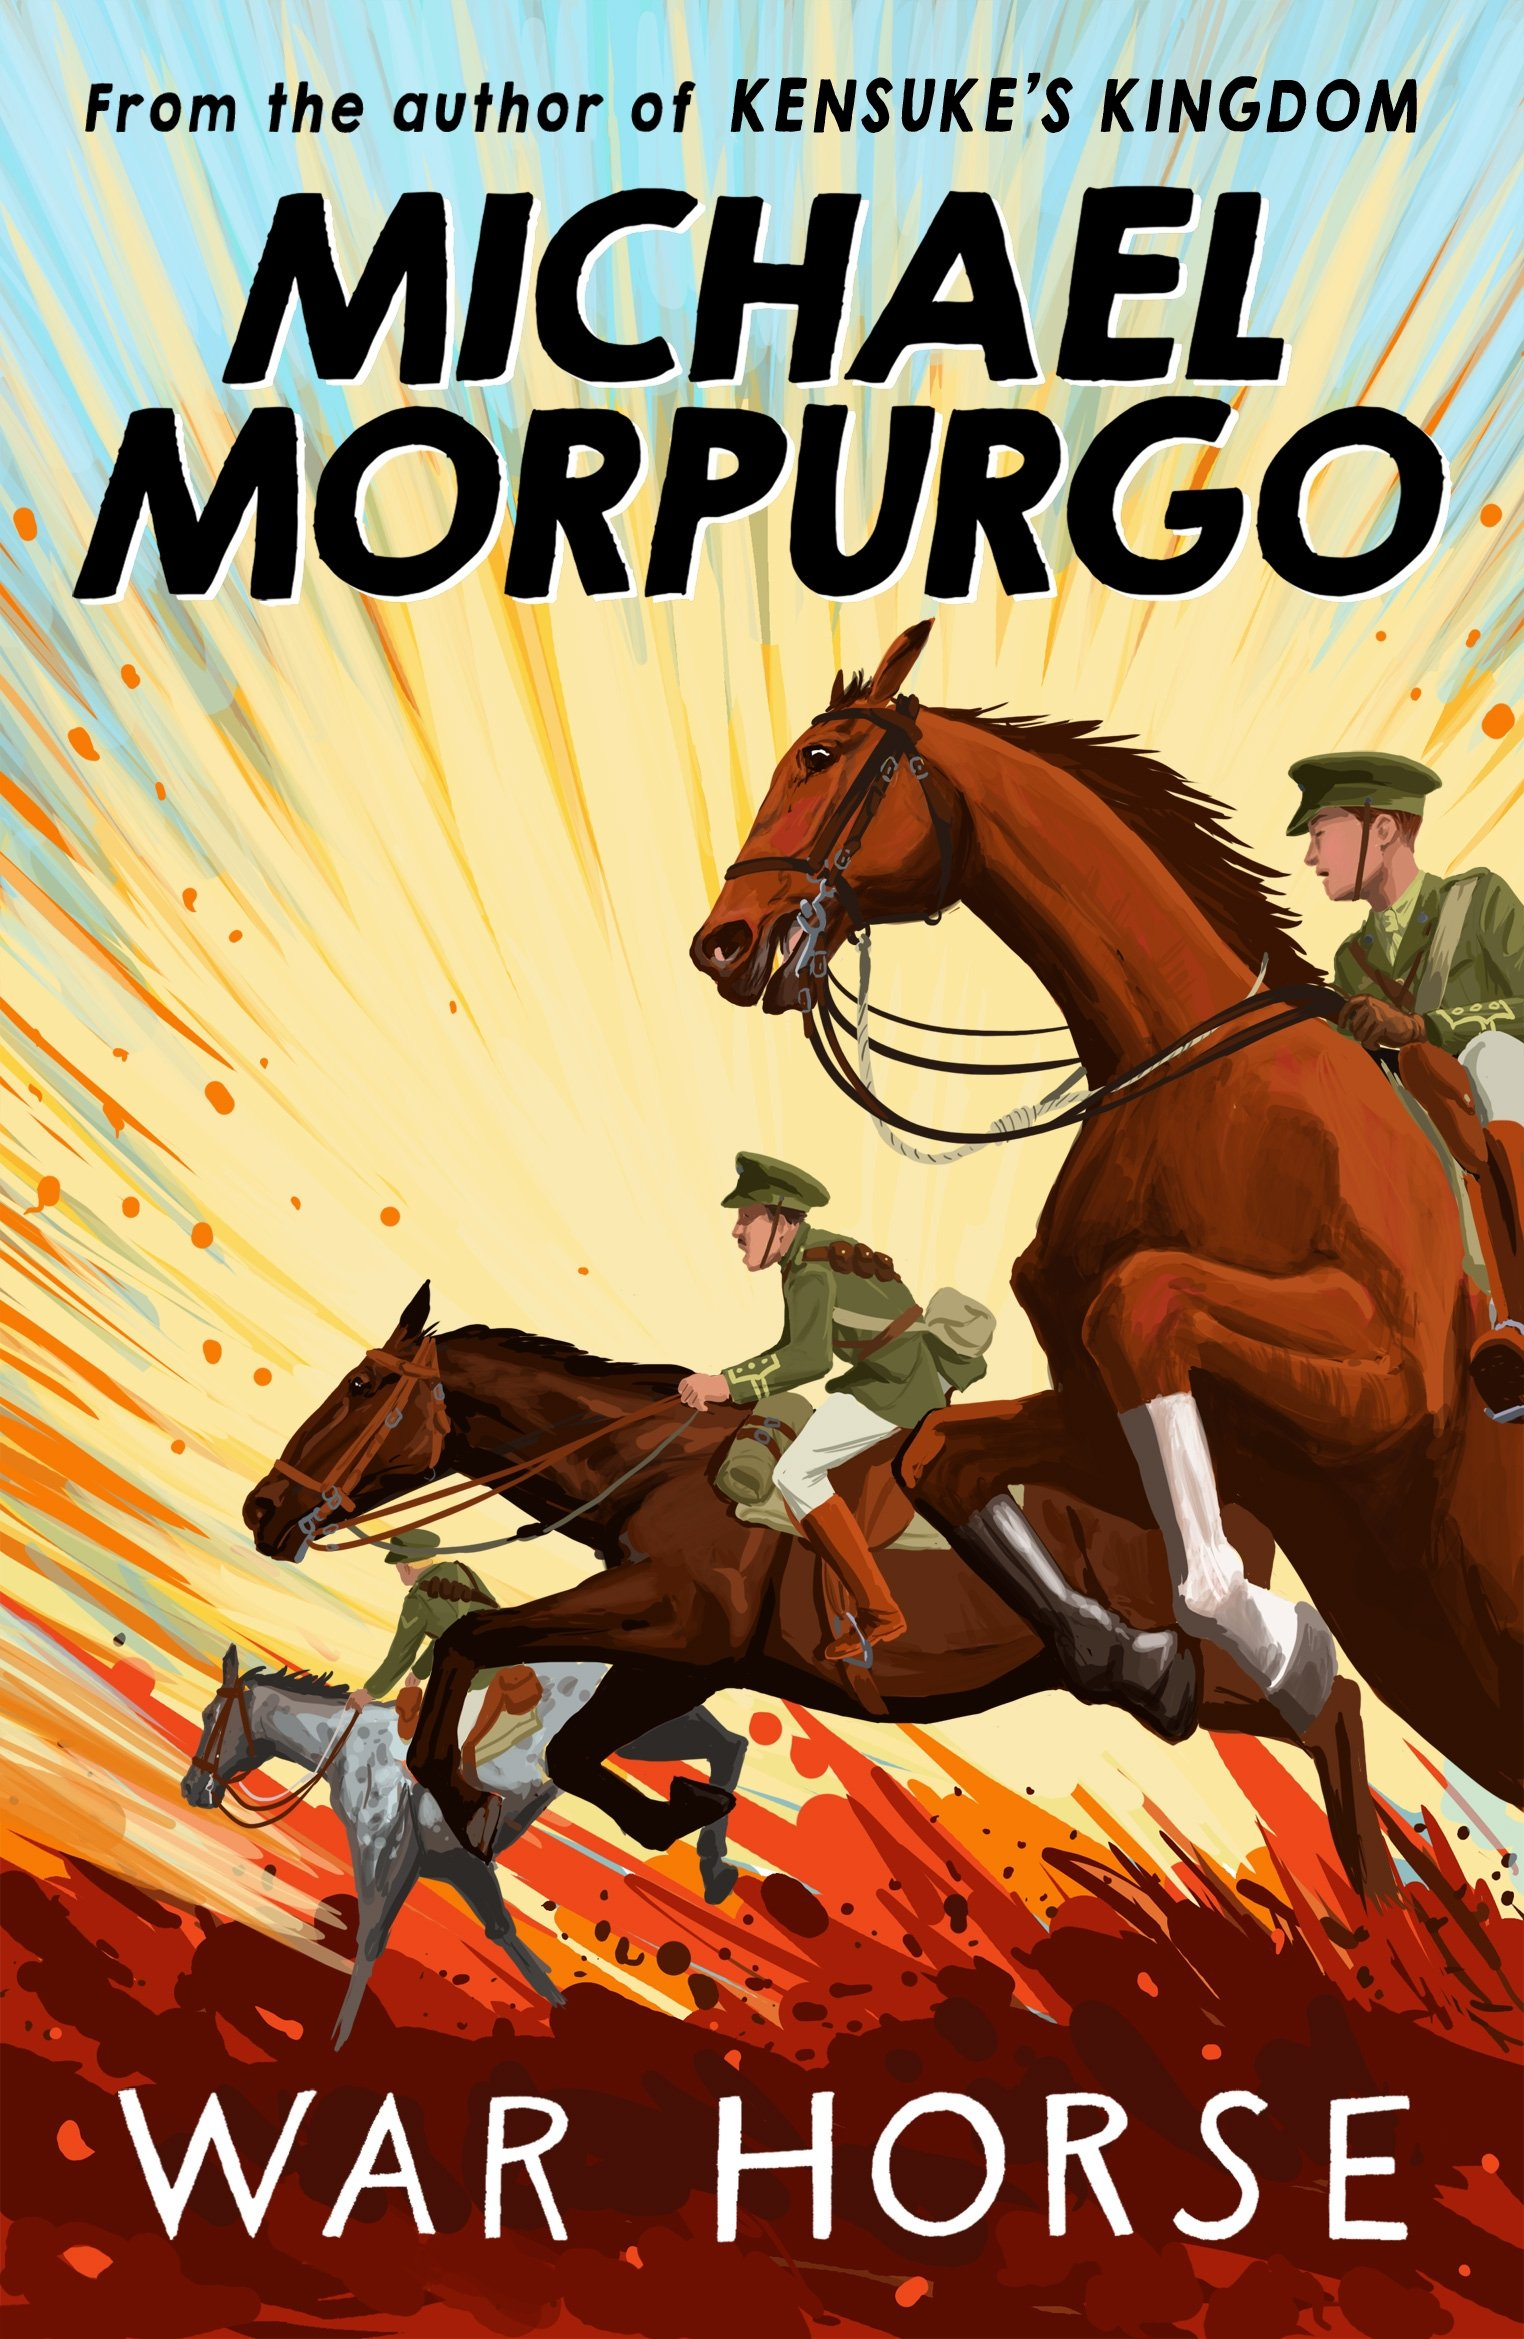 War Horse: Amazon.co.uk: Morpurgo, Michael: Books